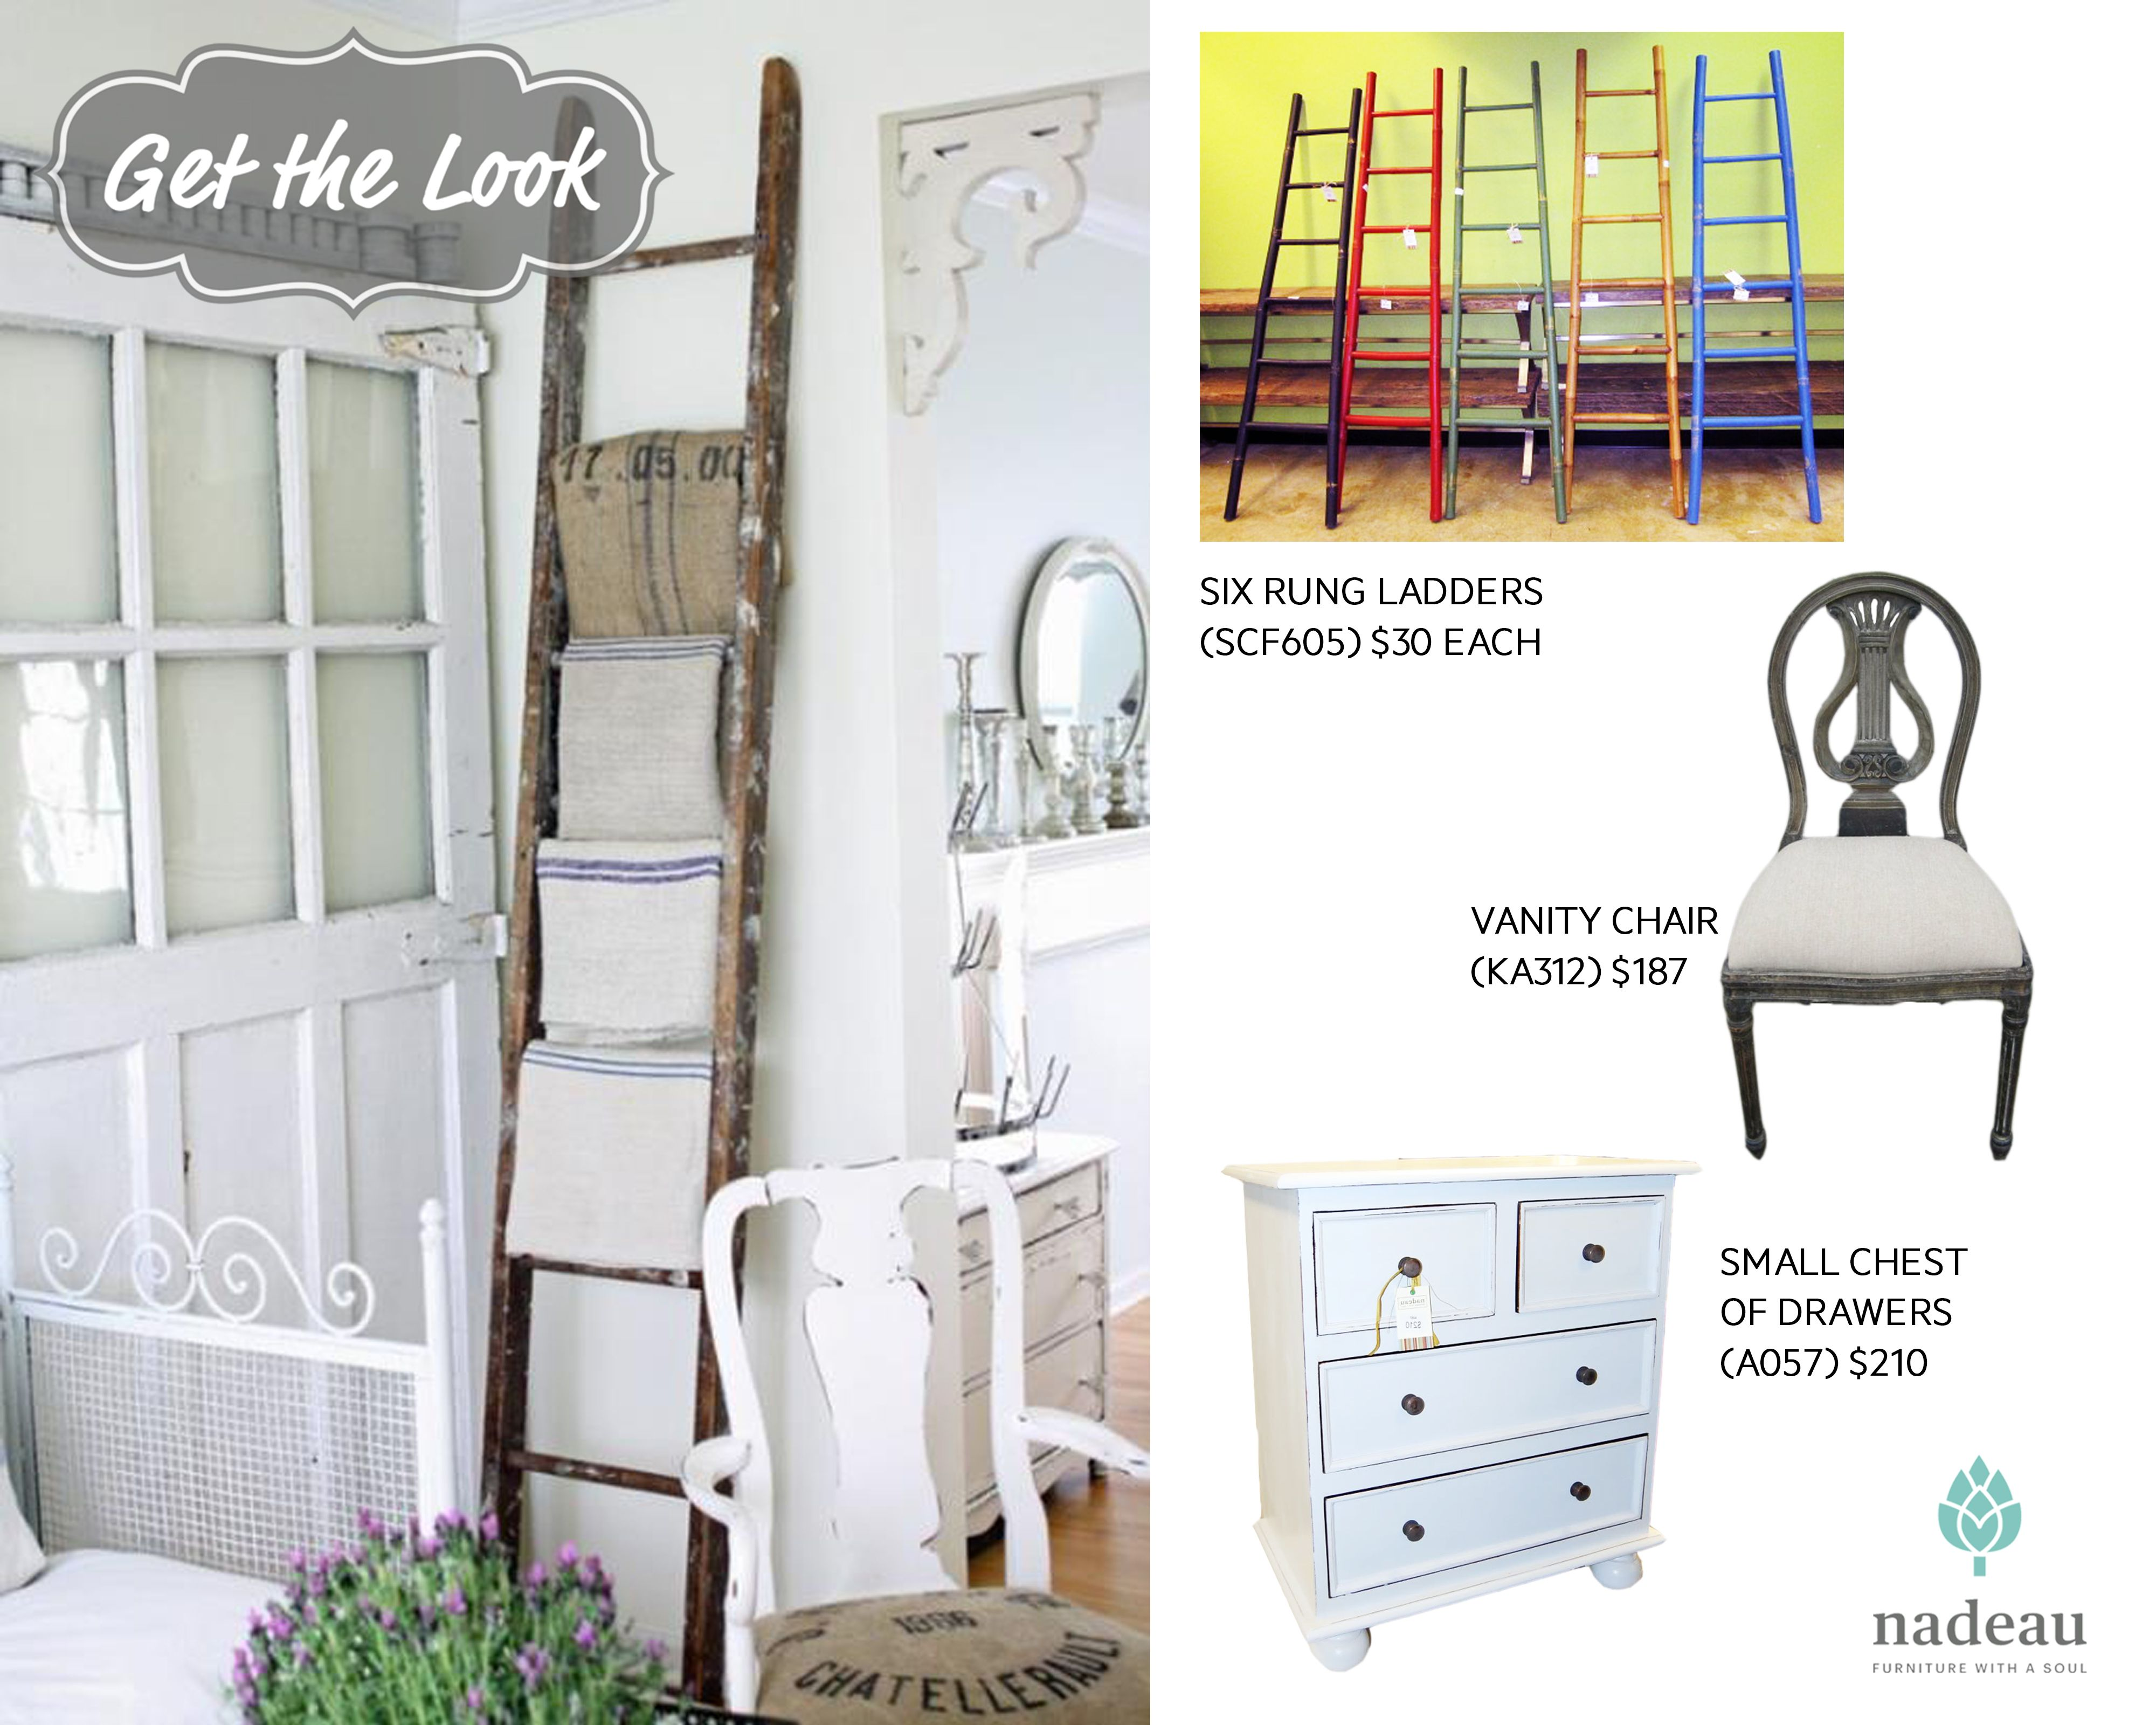 Think creatively with your Furniture. At Nadeau anything